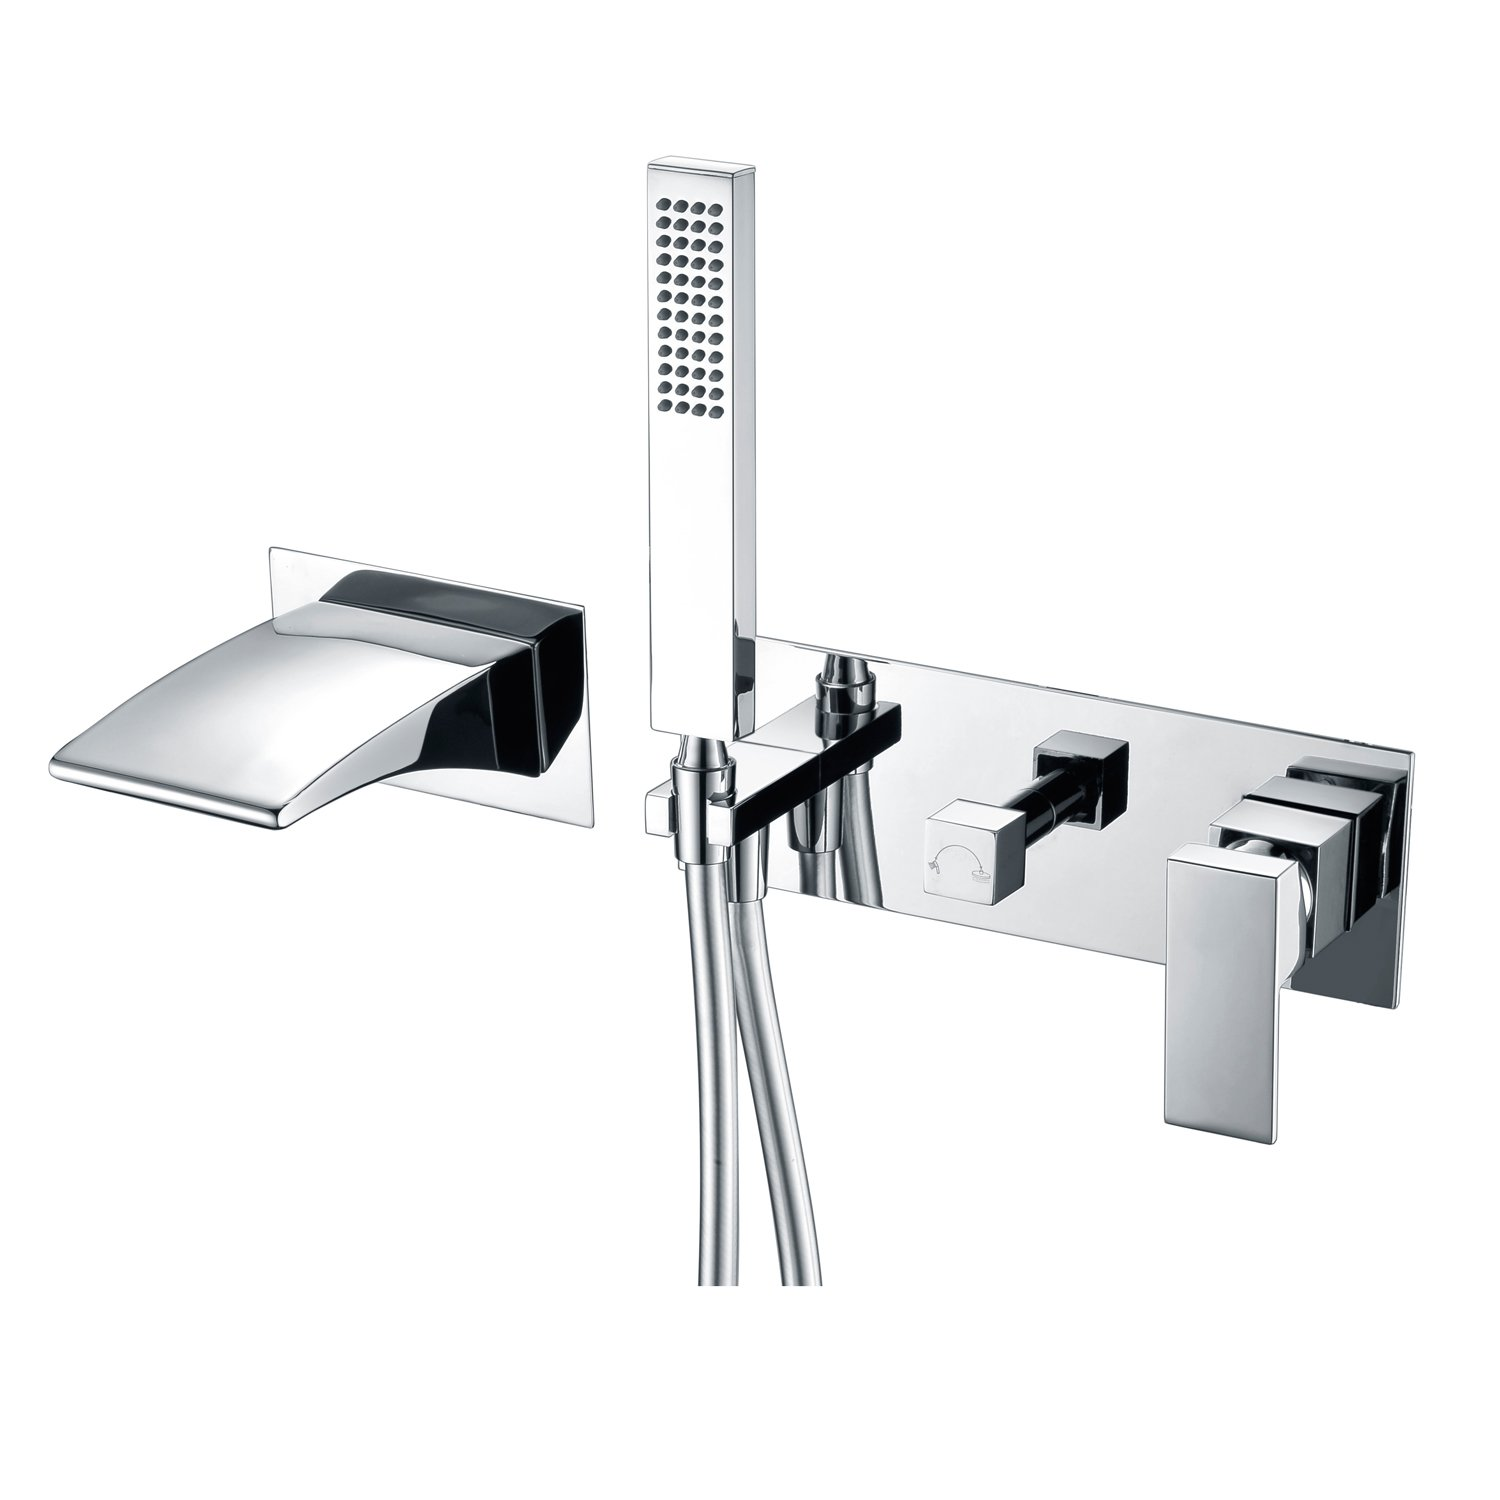 Sumerain Wall Mounted Bath Taps with Shower Mixer,Waterfall Spout tub filler with Handset Kit